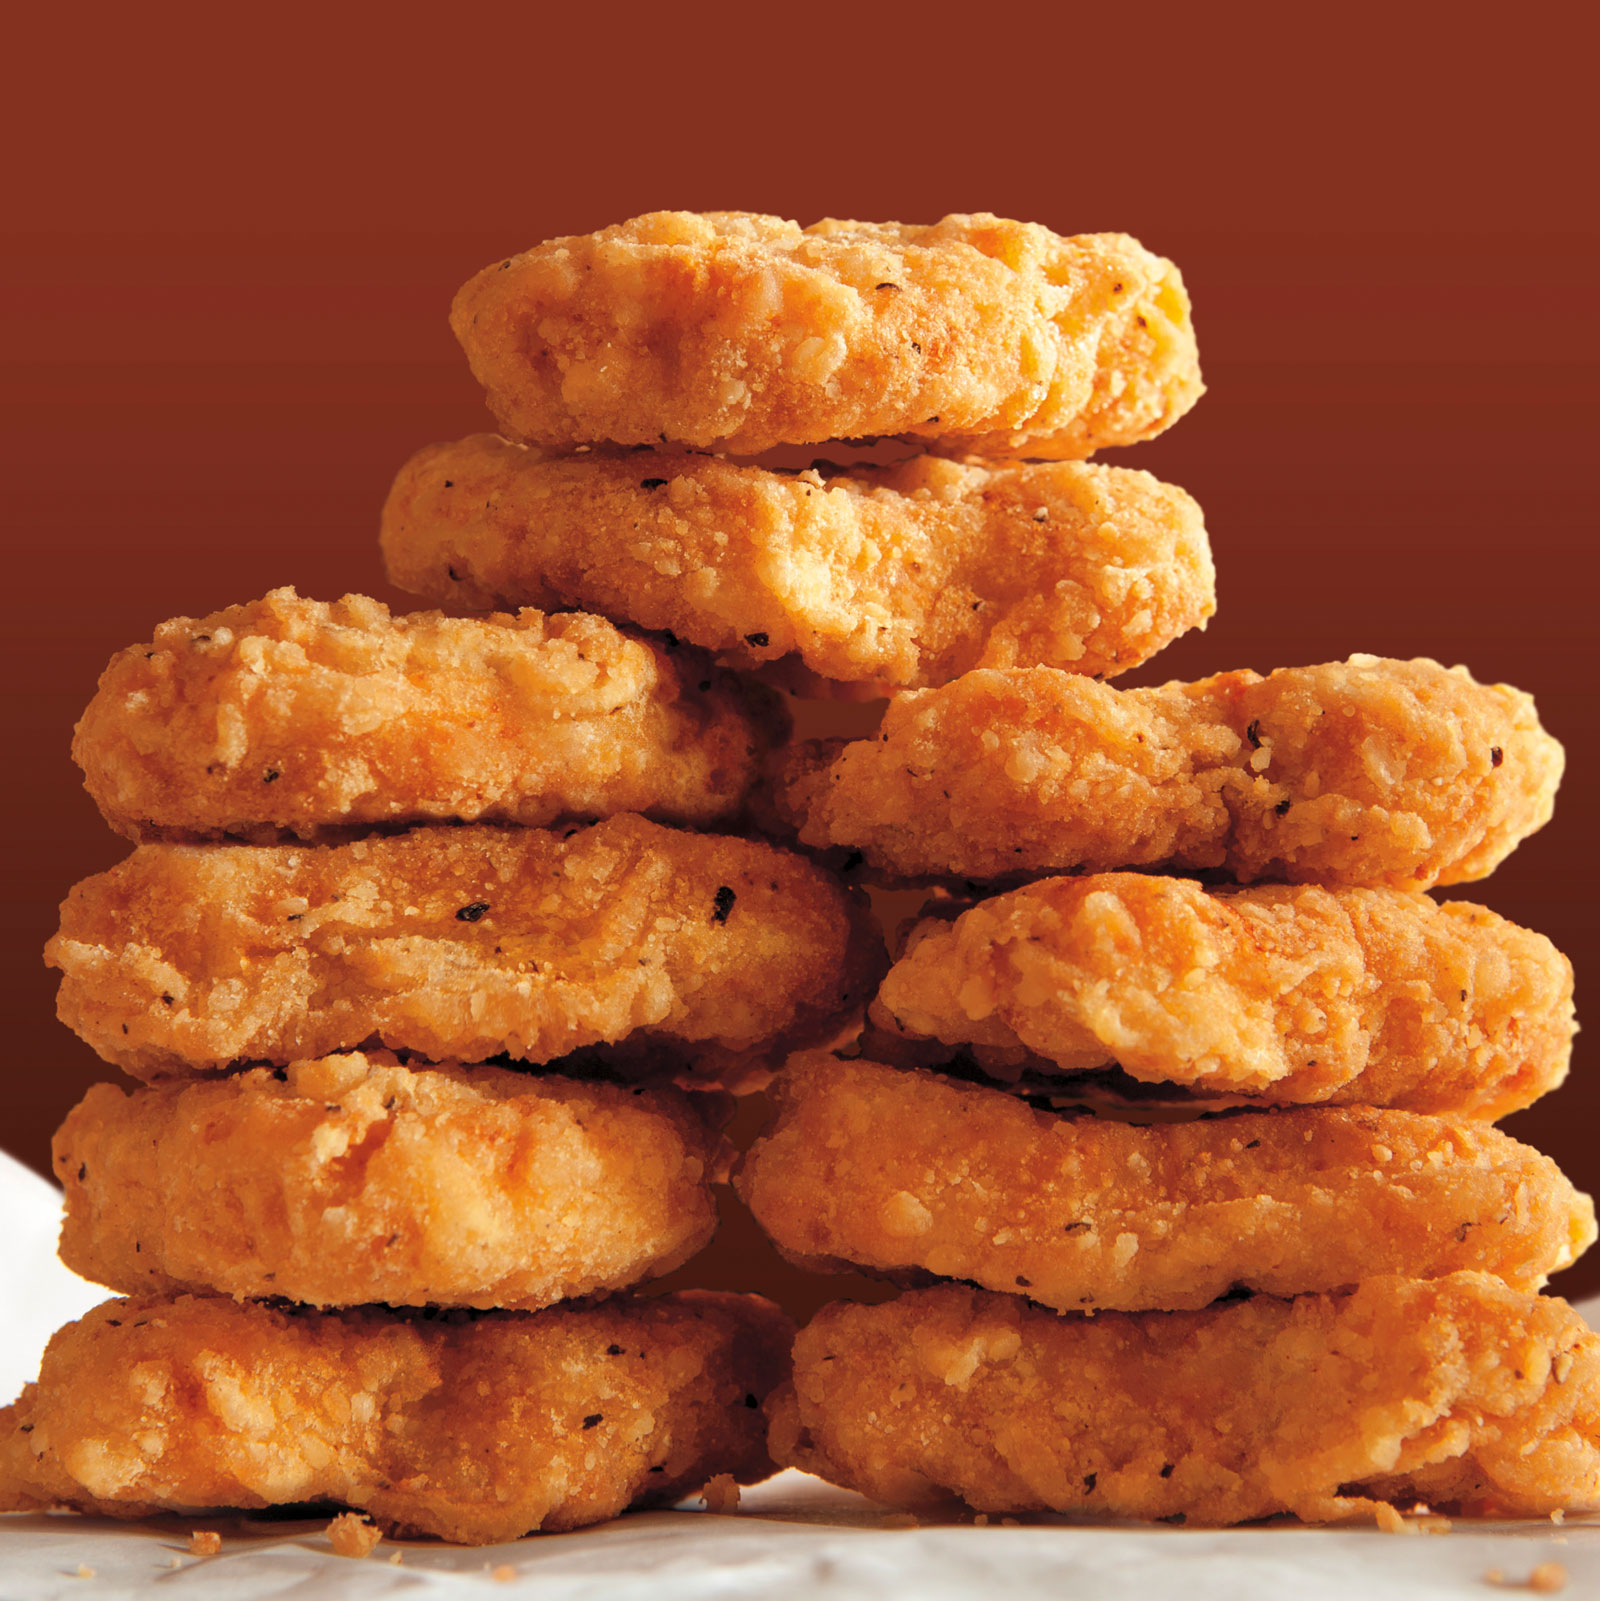 Burger King Offers 100 Chicken Nuggets Deal for $10, Plus Free Delivery